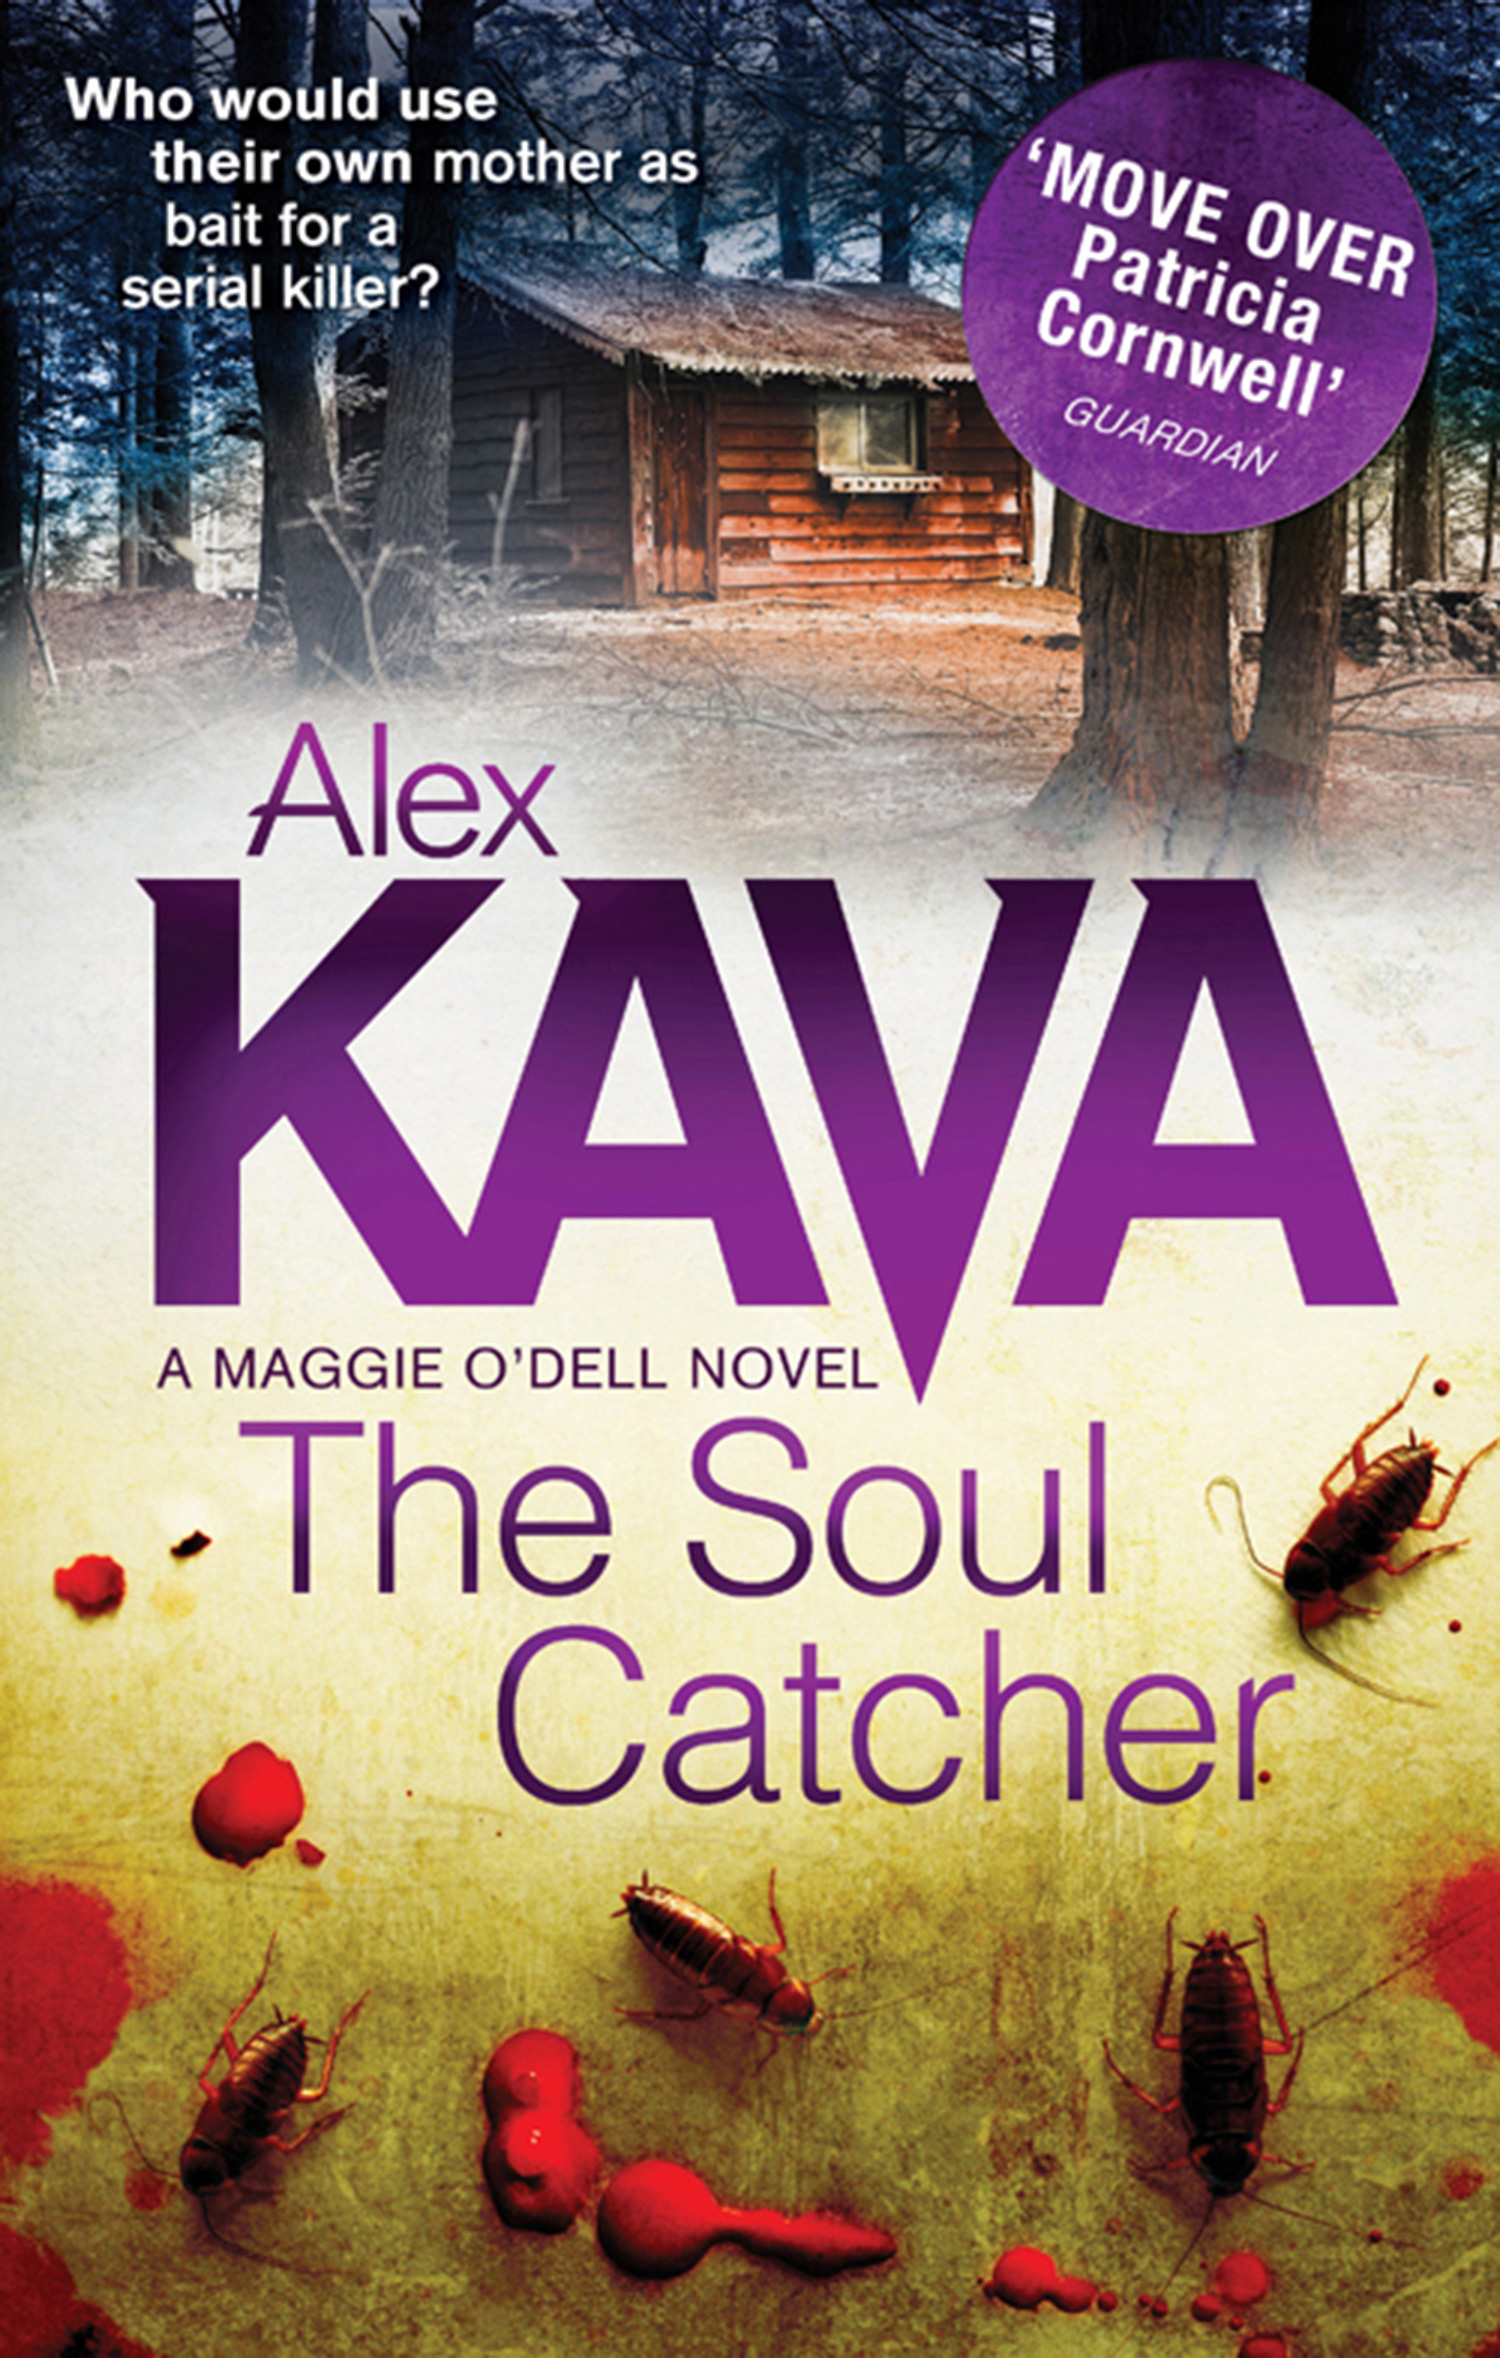 The Soul Catcher